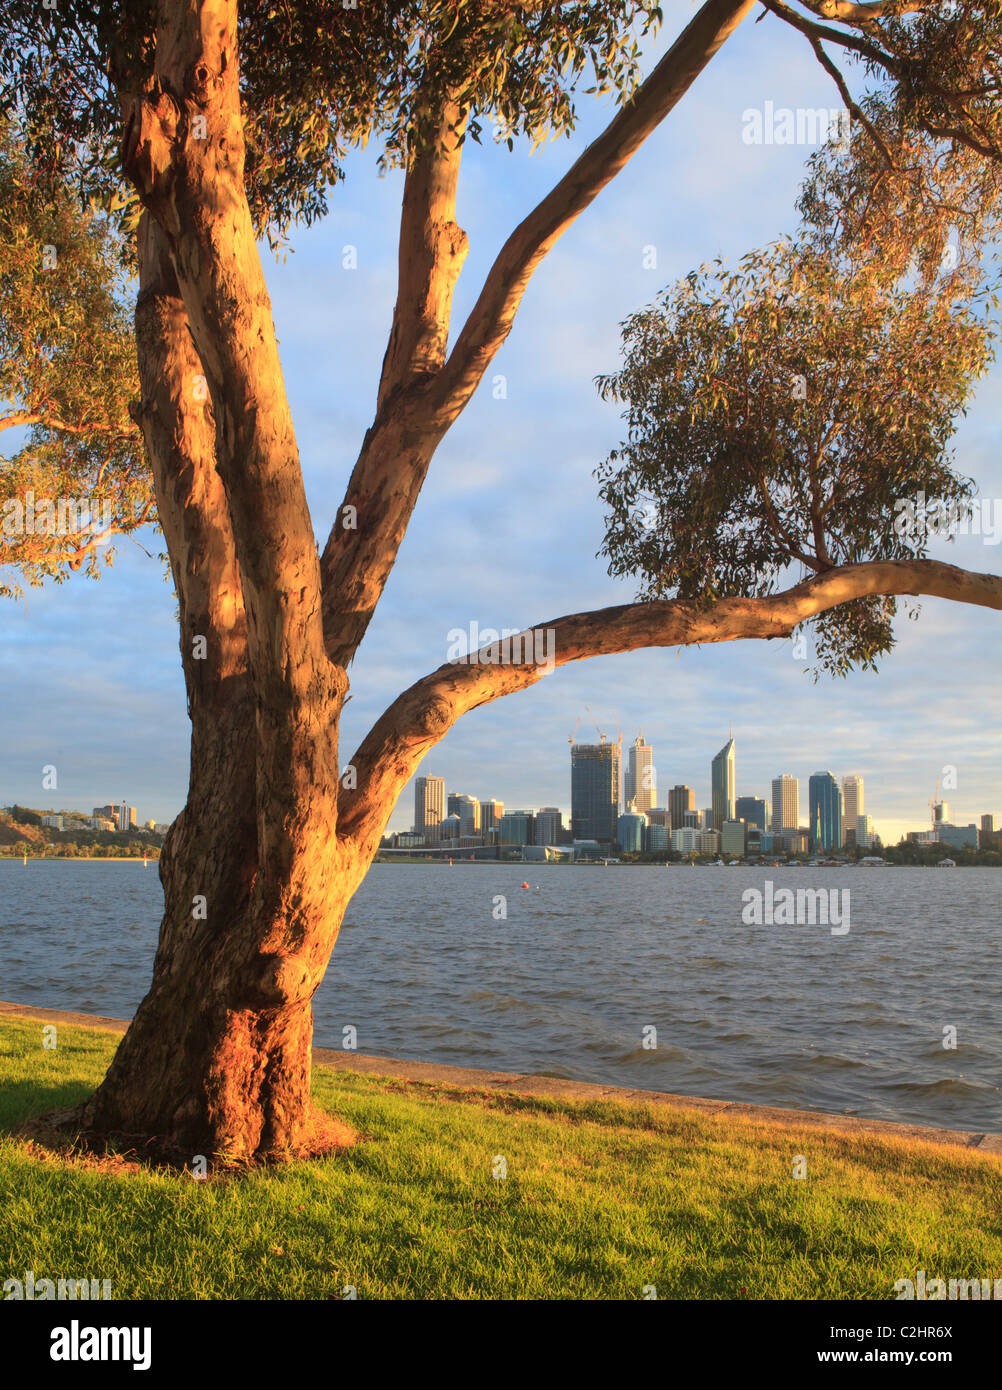 Eucalyptus tree on the banks of the Swan River with the city in the distance. - Stock Image